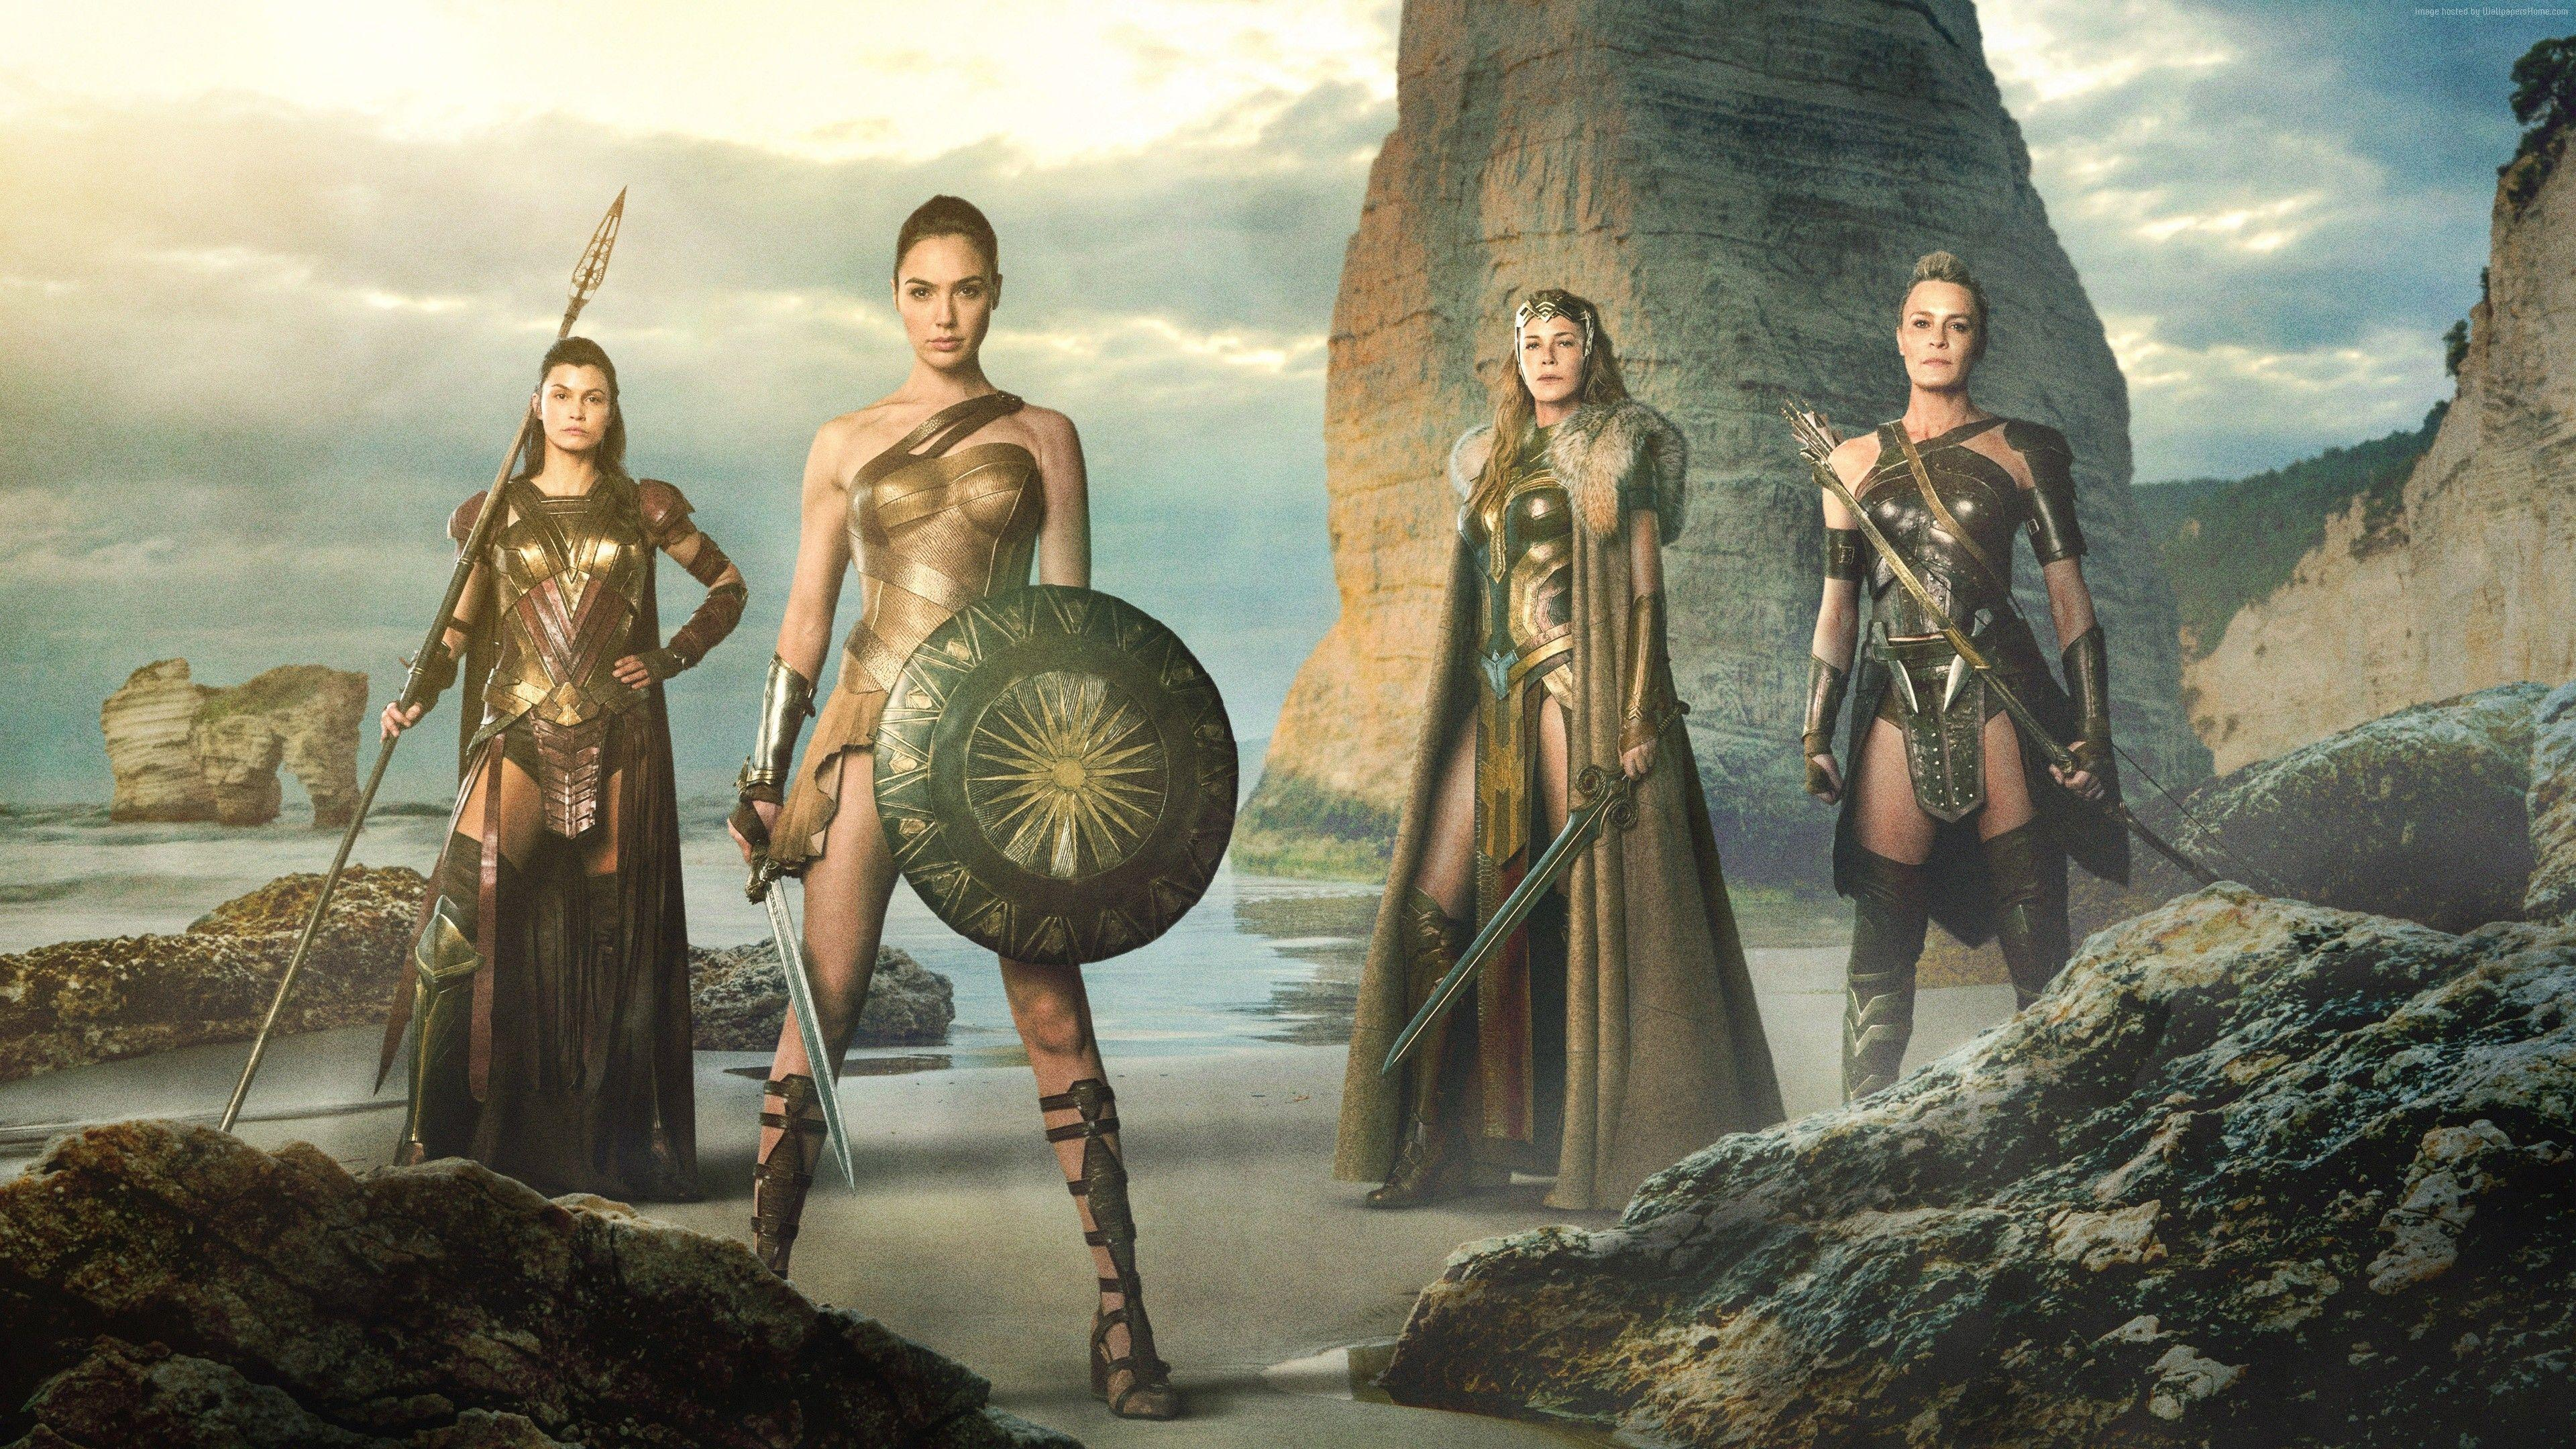 Wonder Woman Wallpaper, Movies: Wonder Woman, Gal Gadot, superhero ...